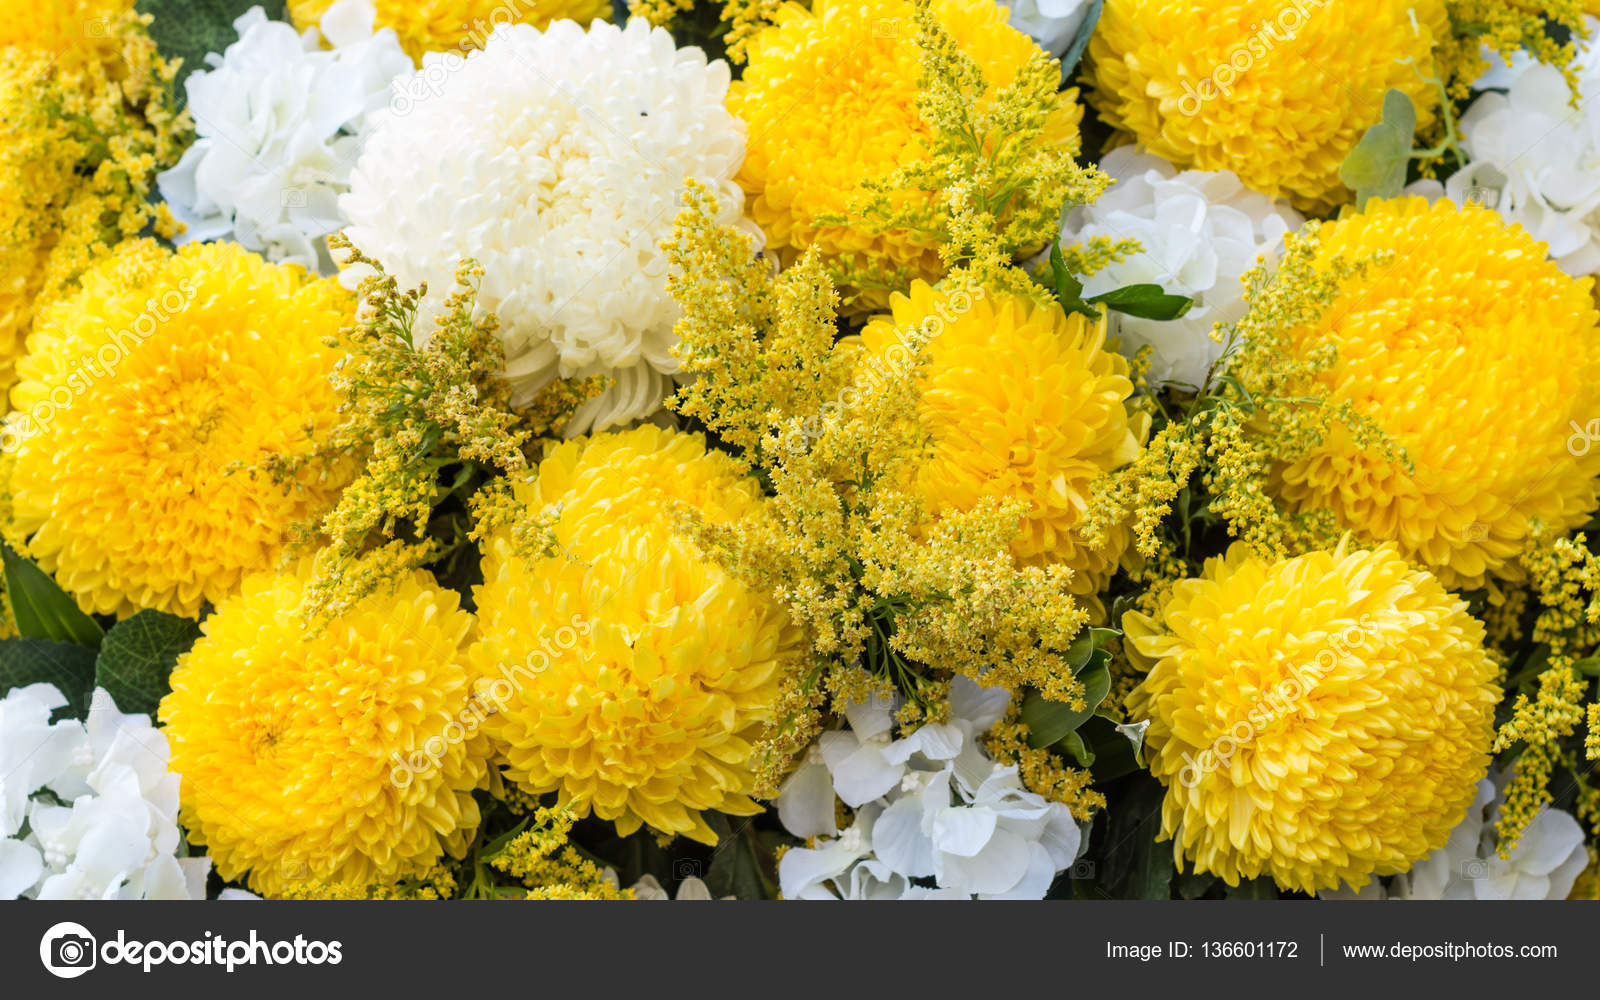 Flowers Abstract Soft Floral Natural Background From Yellow And